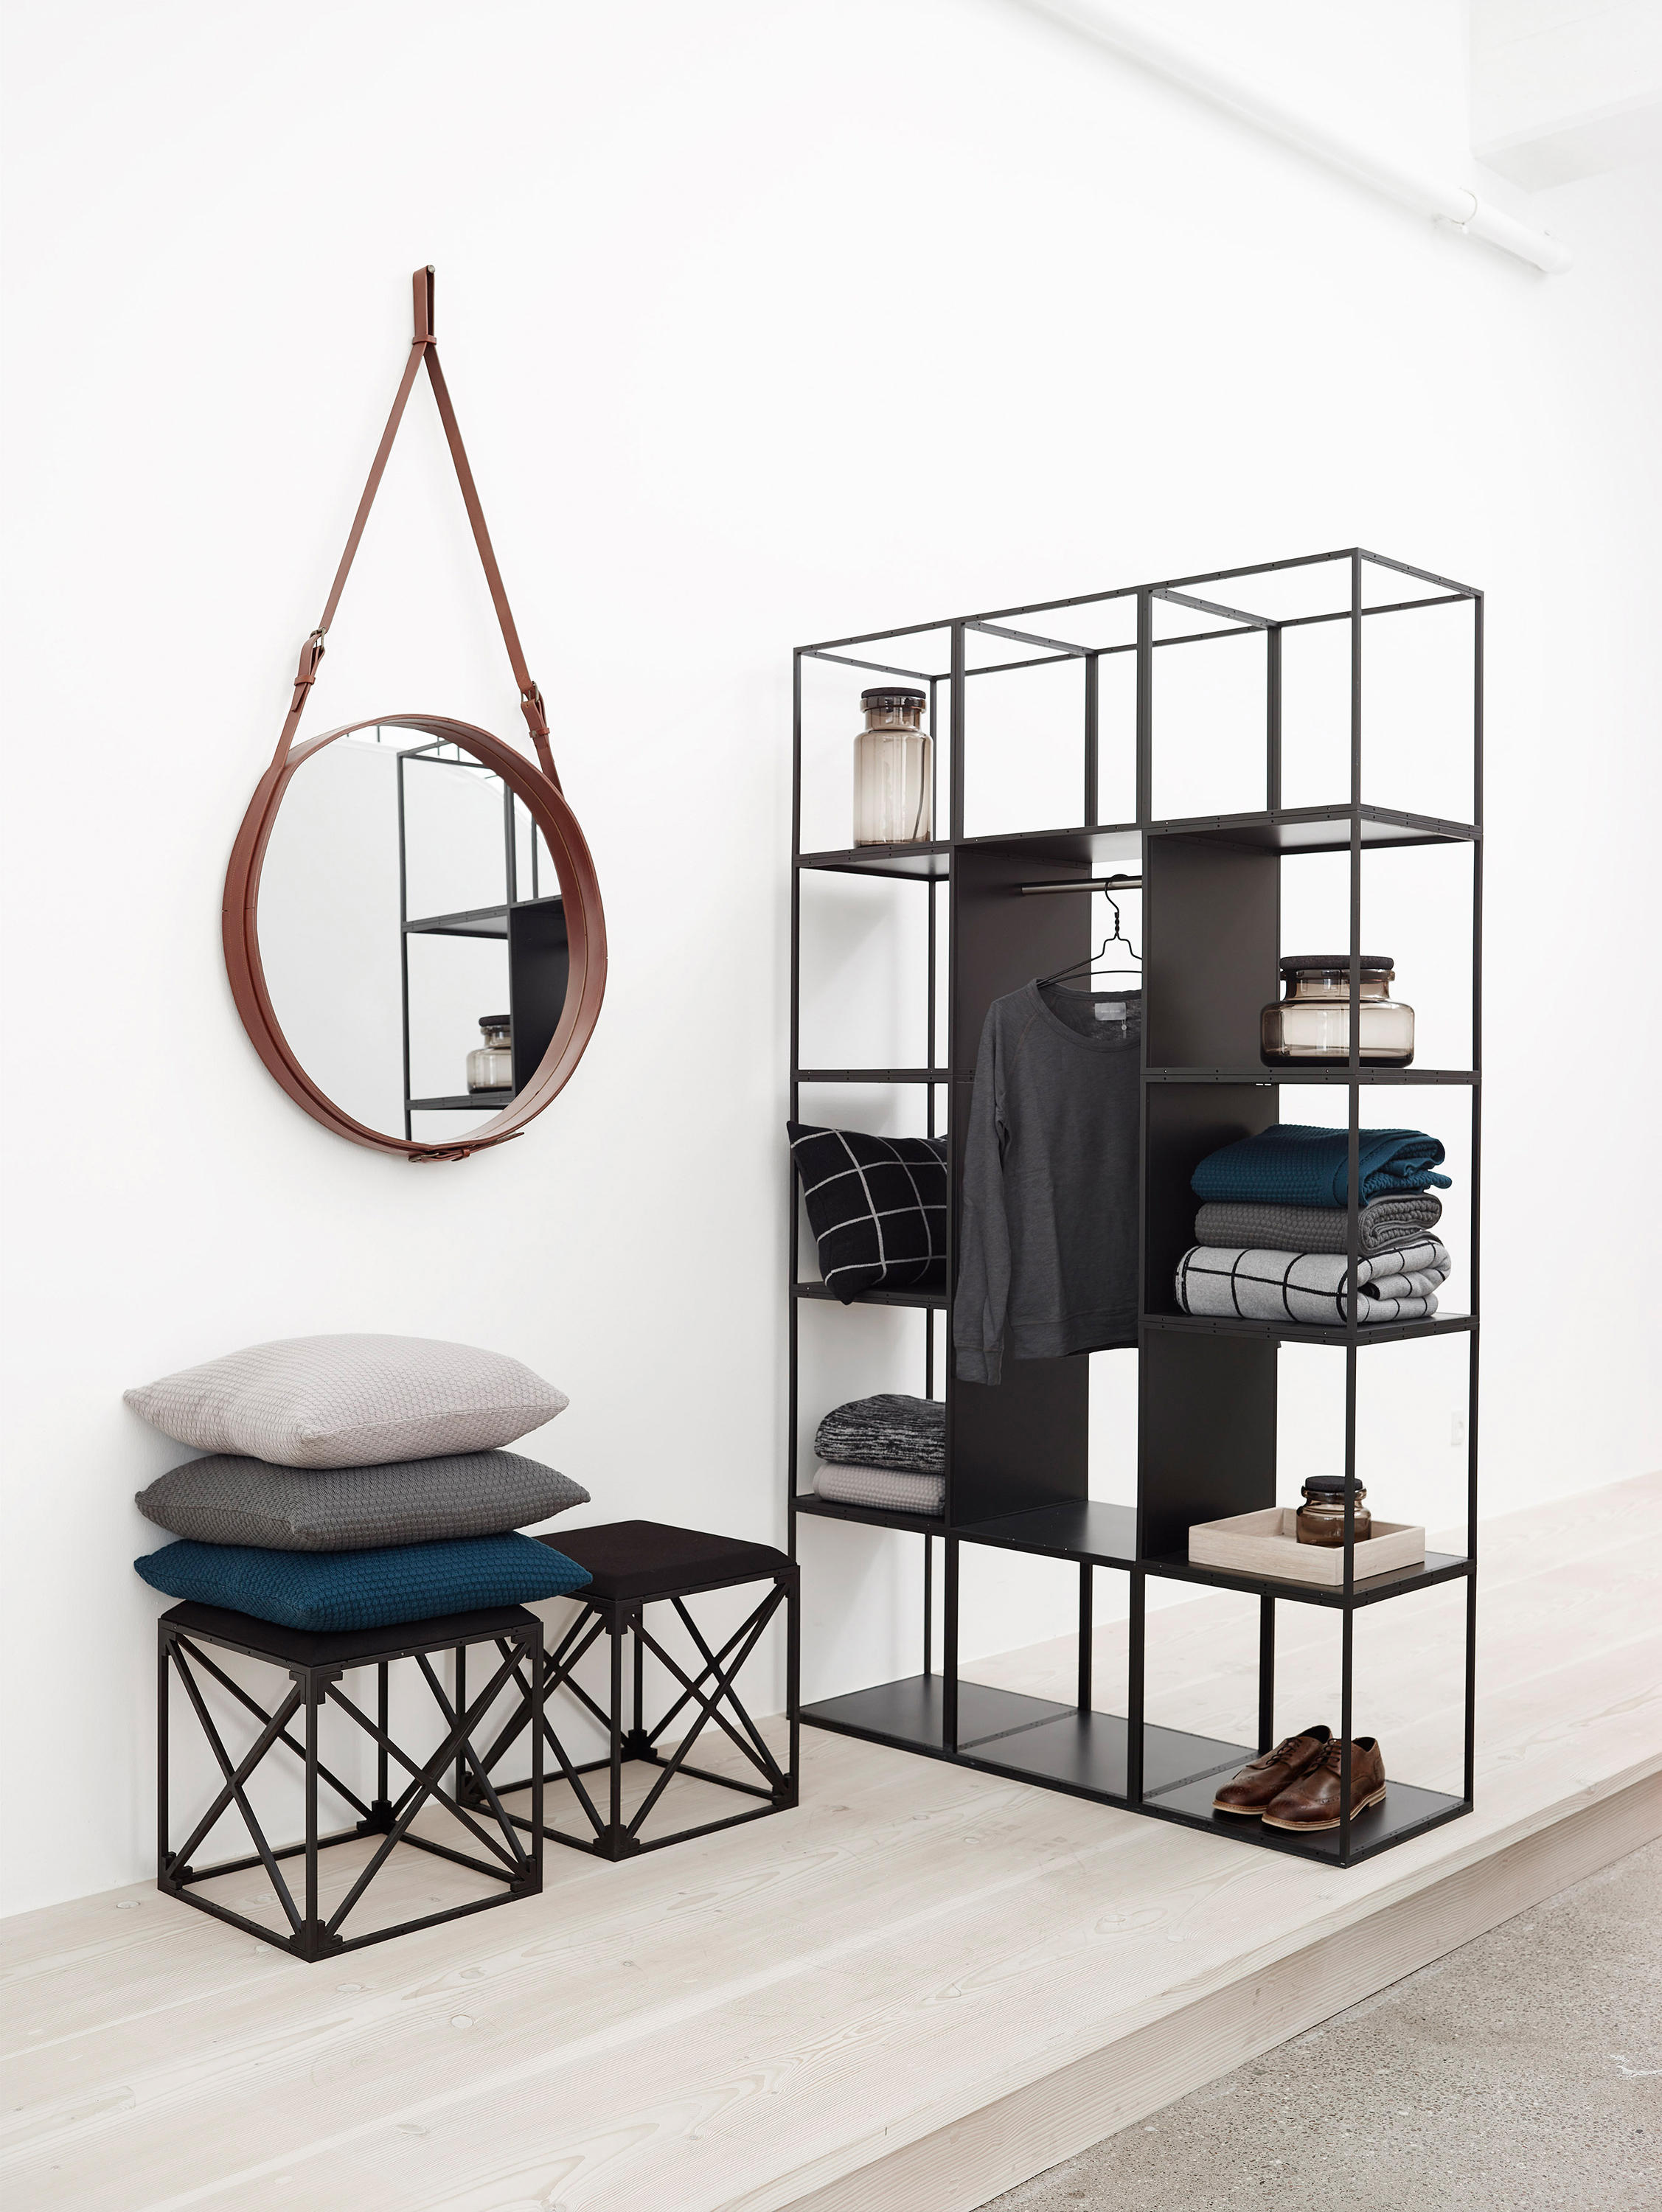 Grid wardrobe lockers from grid system aps architonic for Grid room